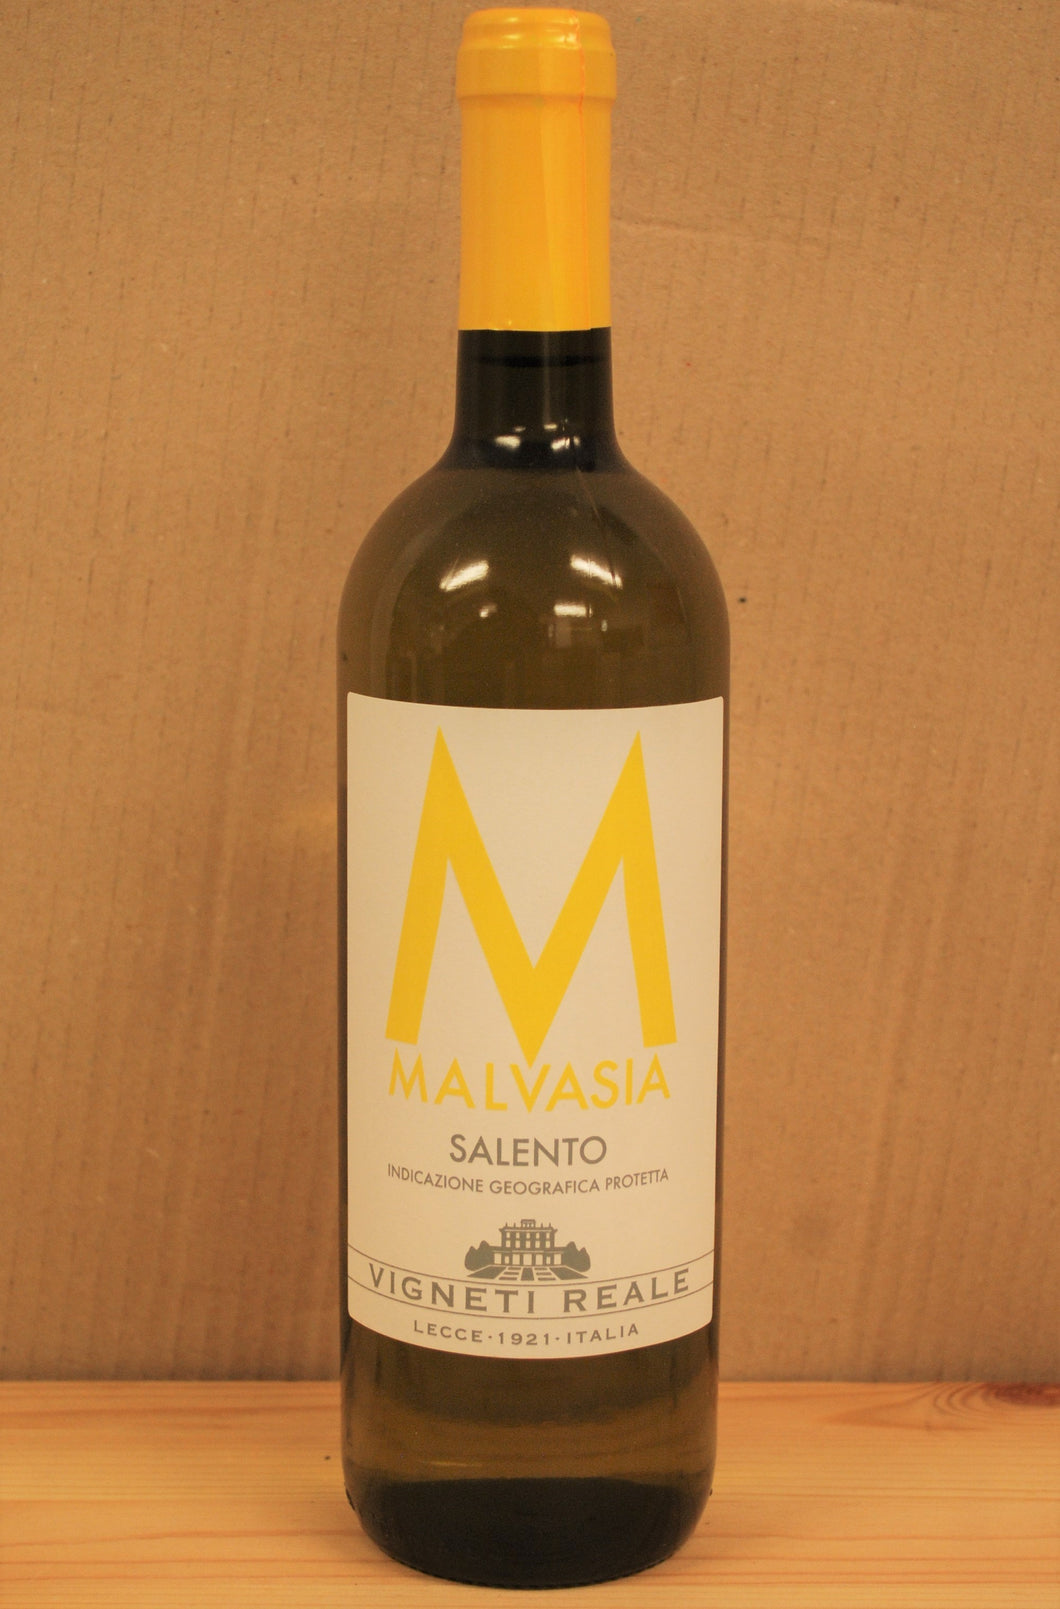 Malvasia Bianca - Salento IGP Vigneti Reale - 750ml bottle